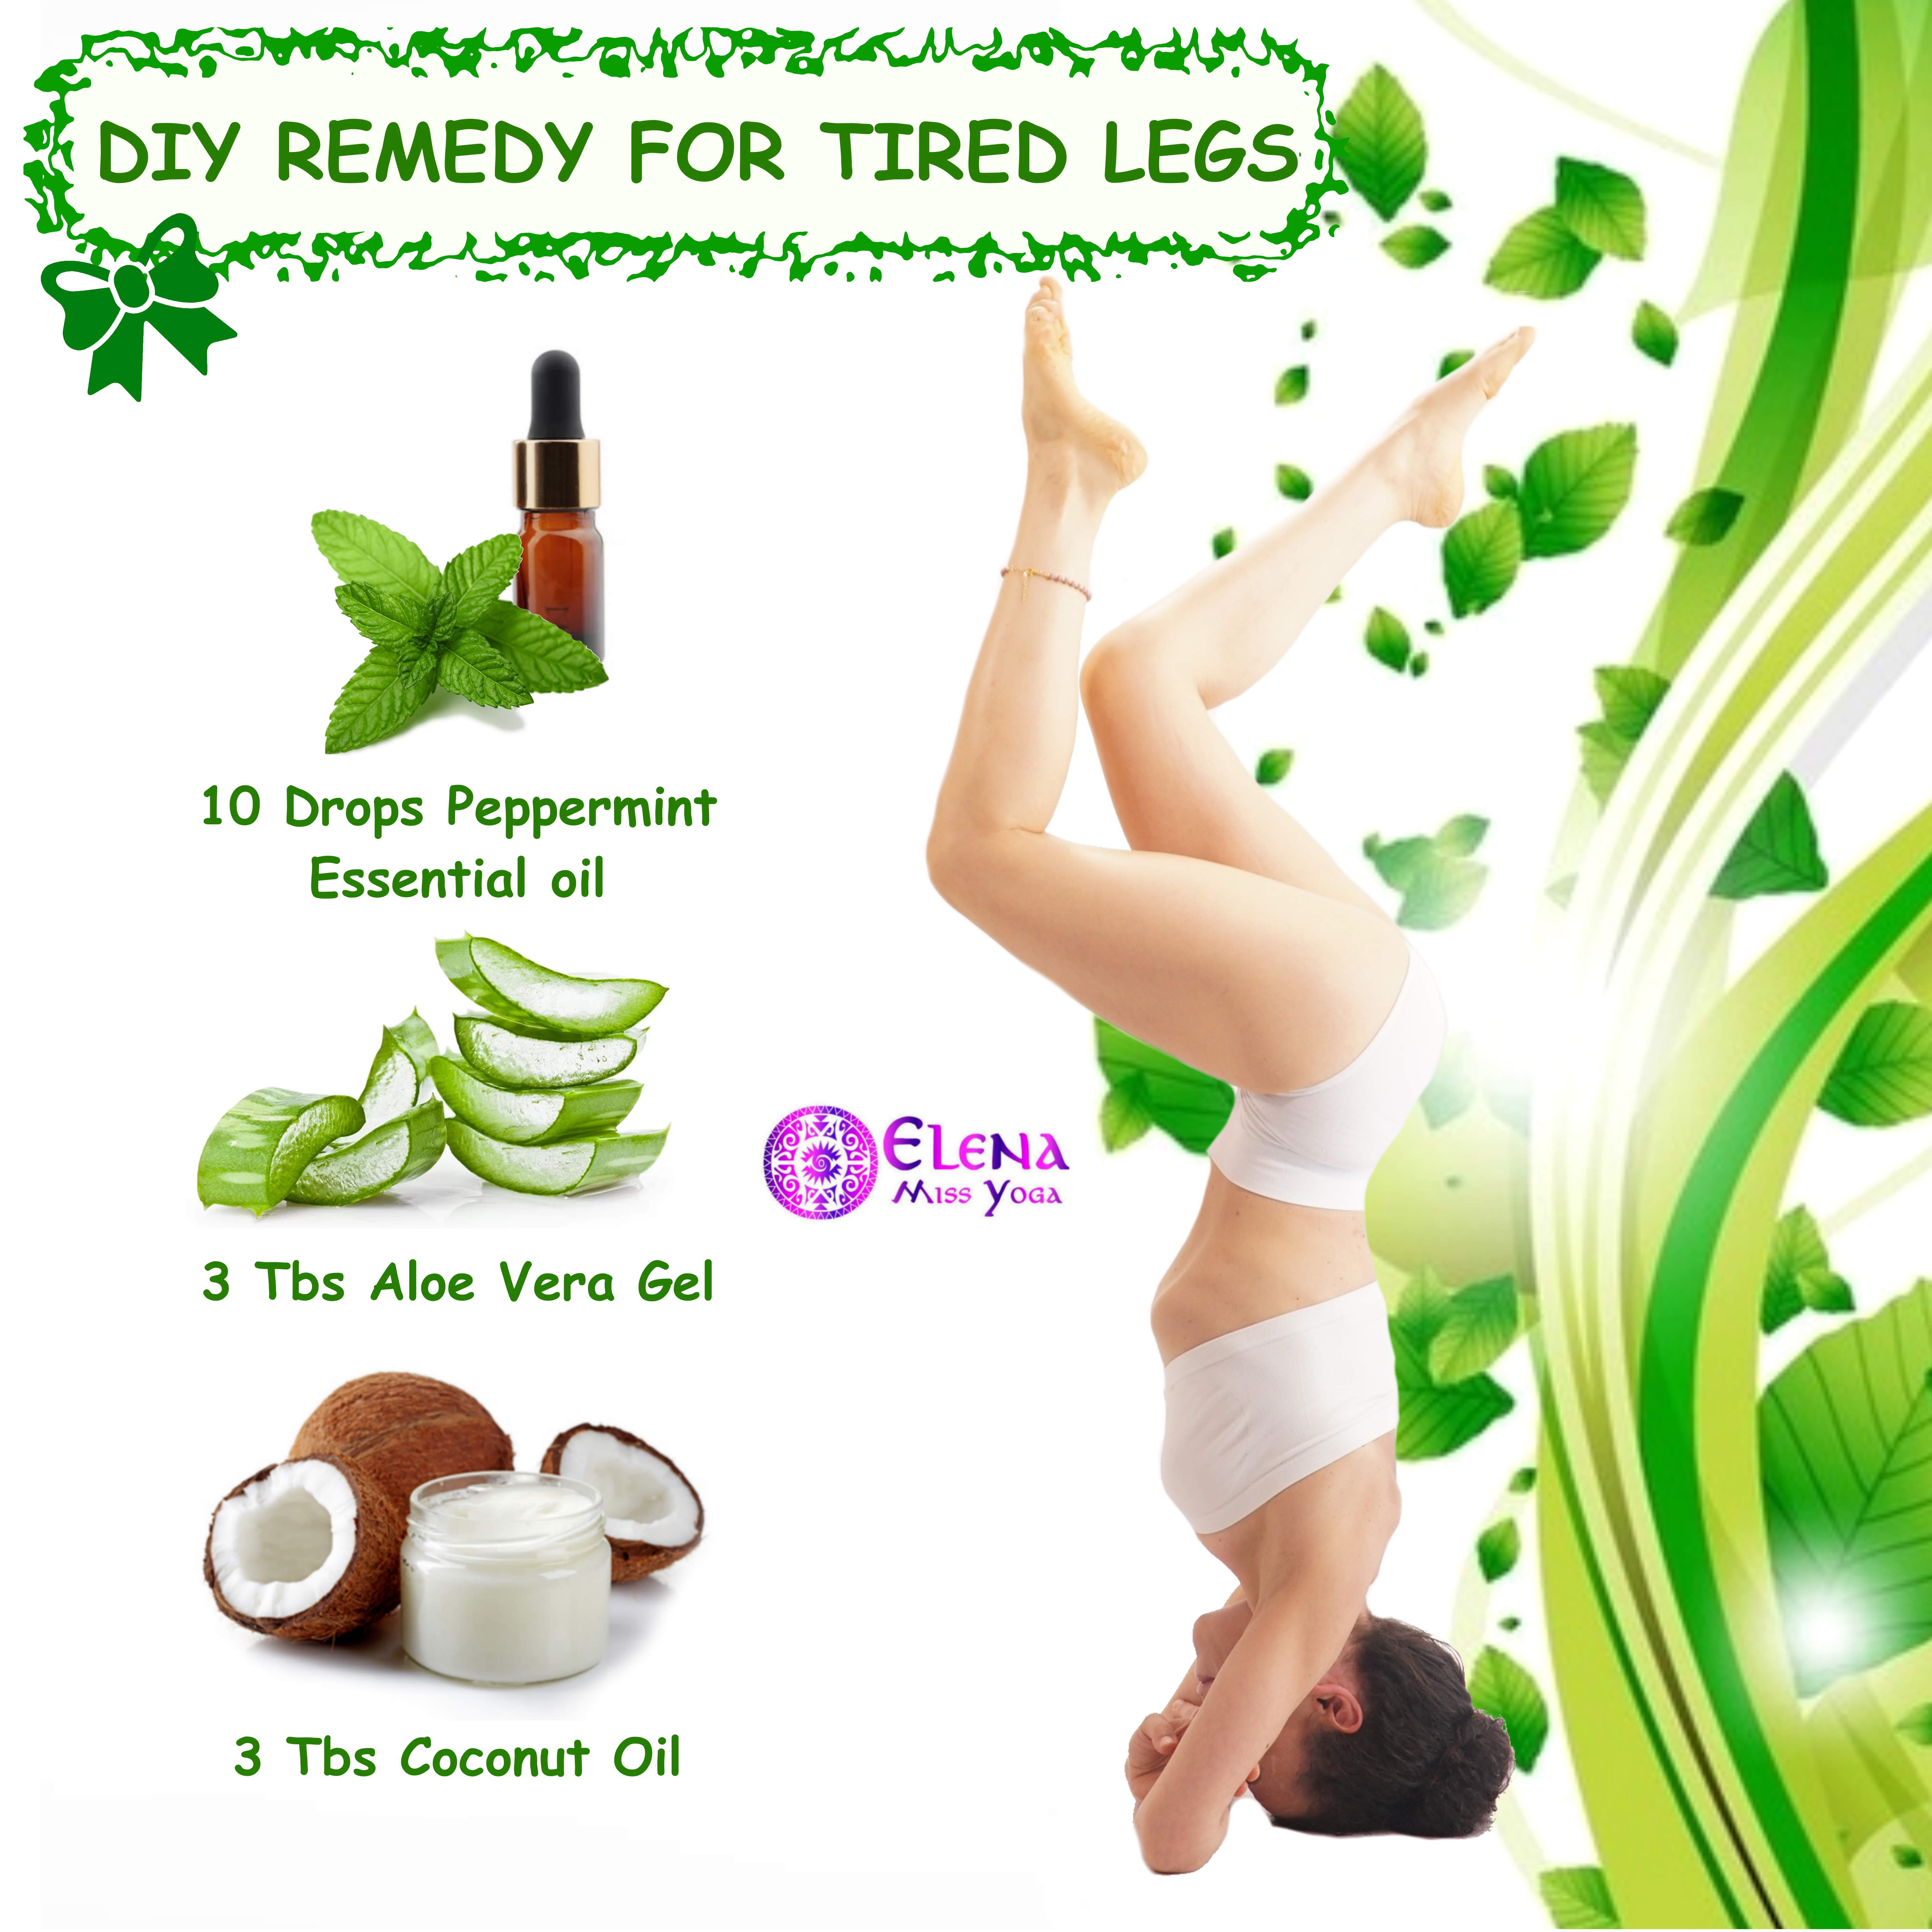 DIY REMEDY FOR TIRED LEGS